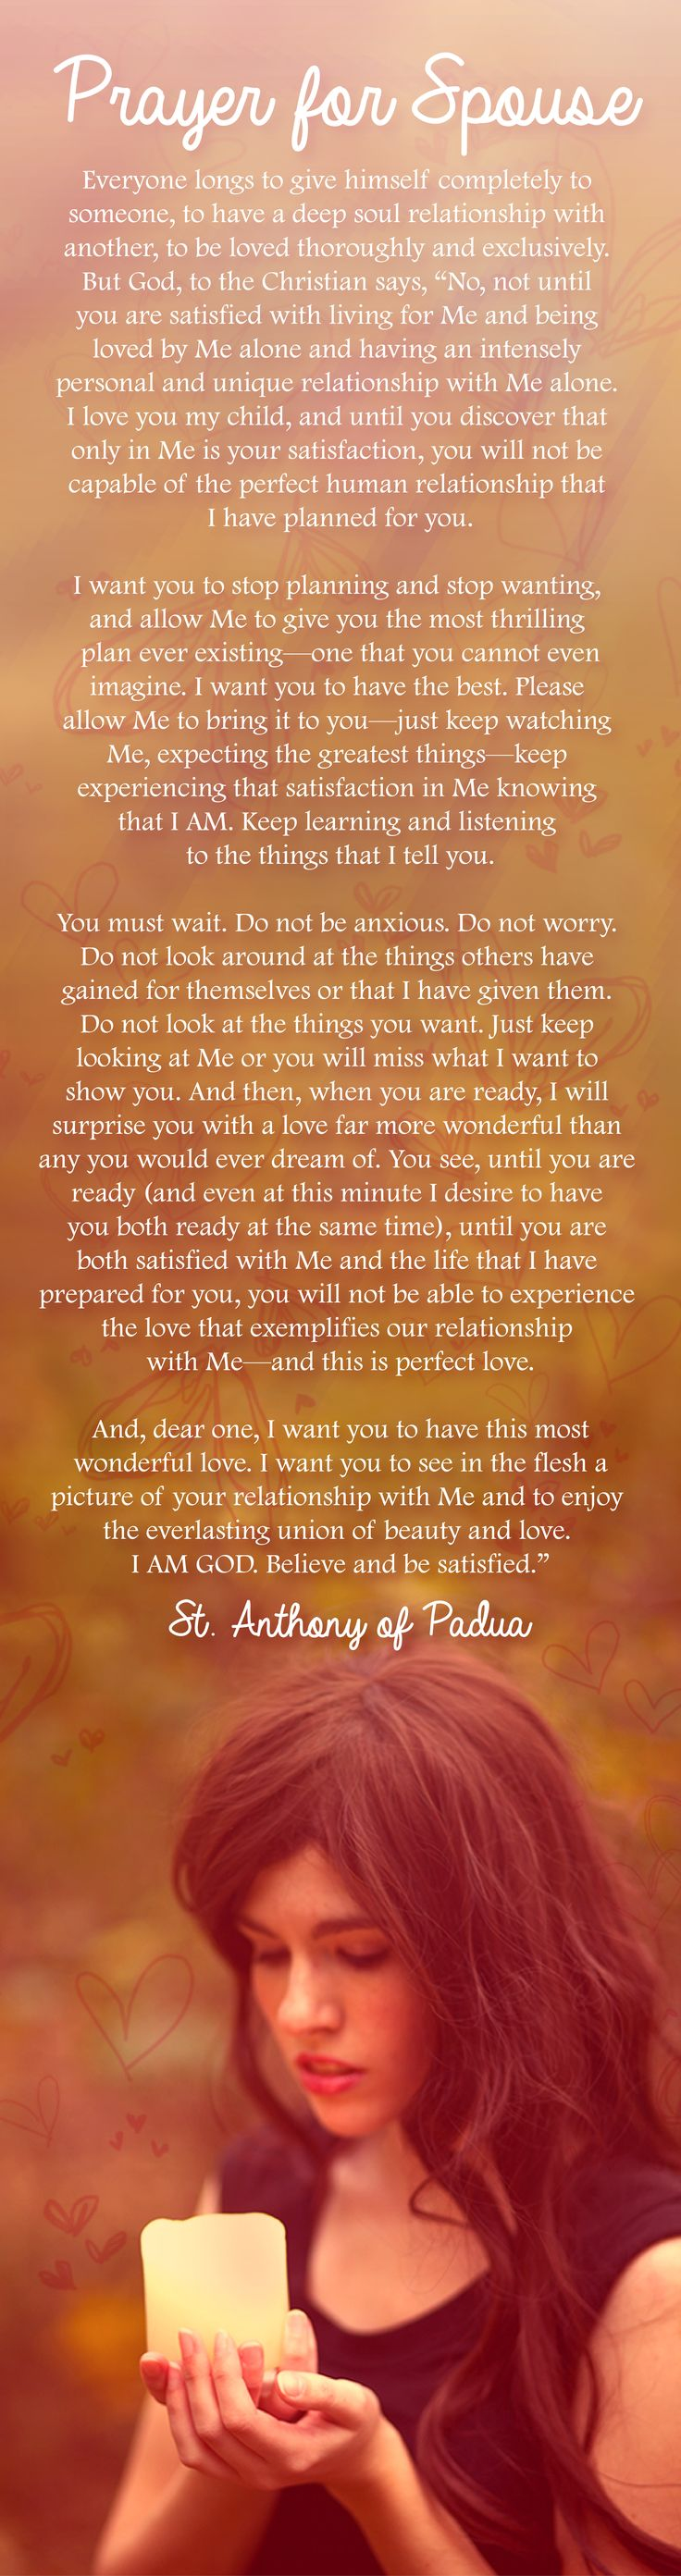 PRAYER FOR SPOUSE ♥ I remember praying this before I met Jeff. Hope to share it with my boys someday.